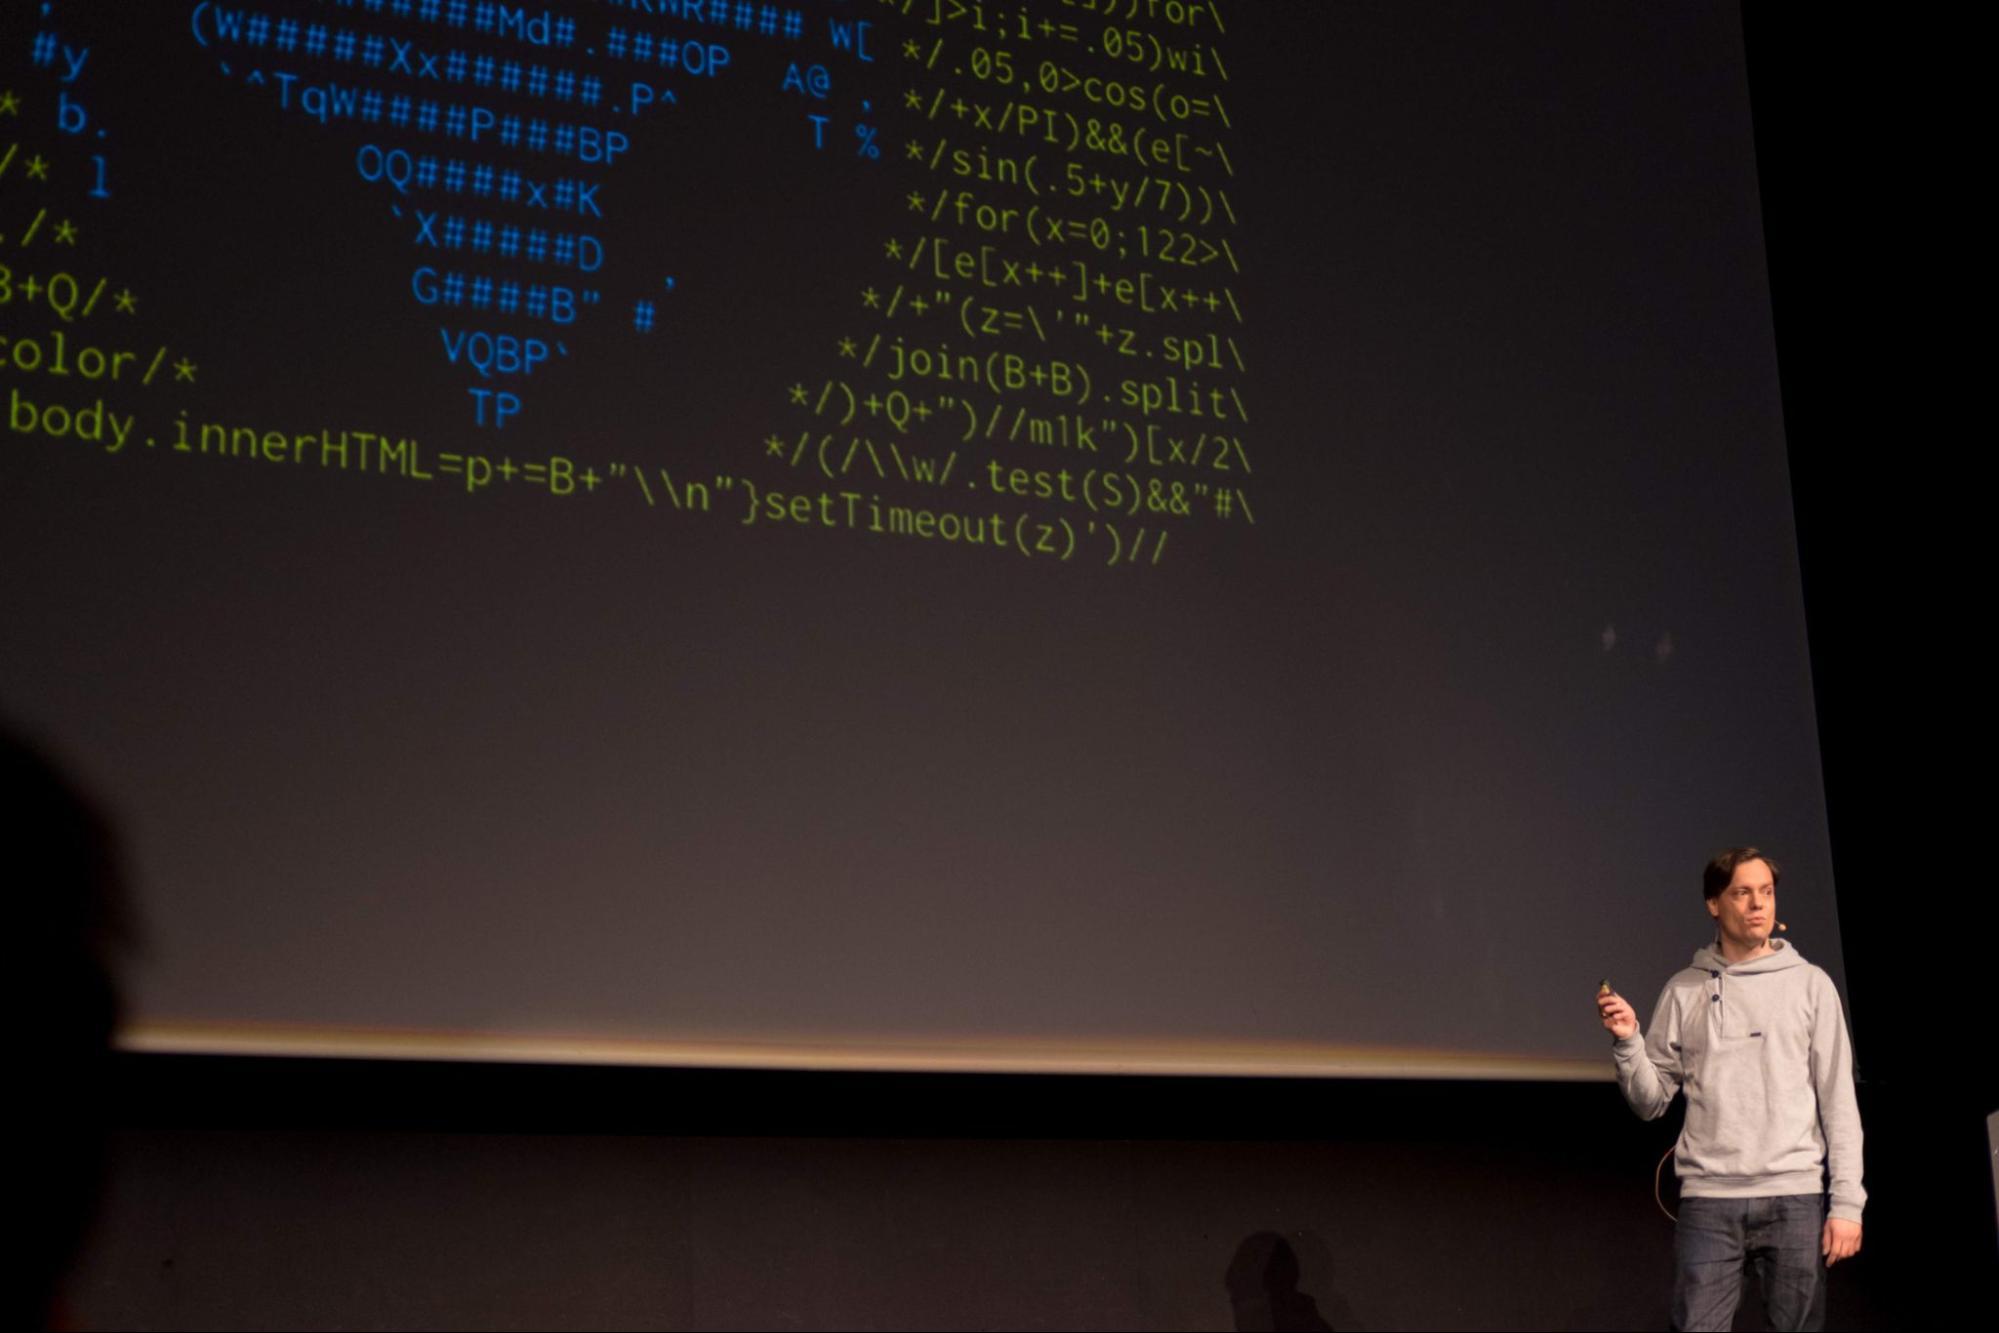 Image shows Martin Kleppe presenting onstage. A large projector screen displays code behind him